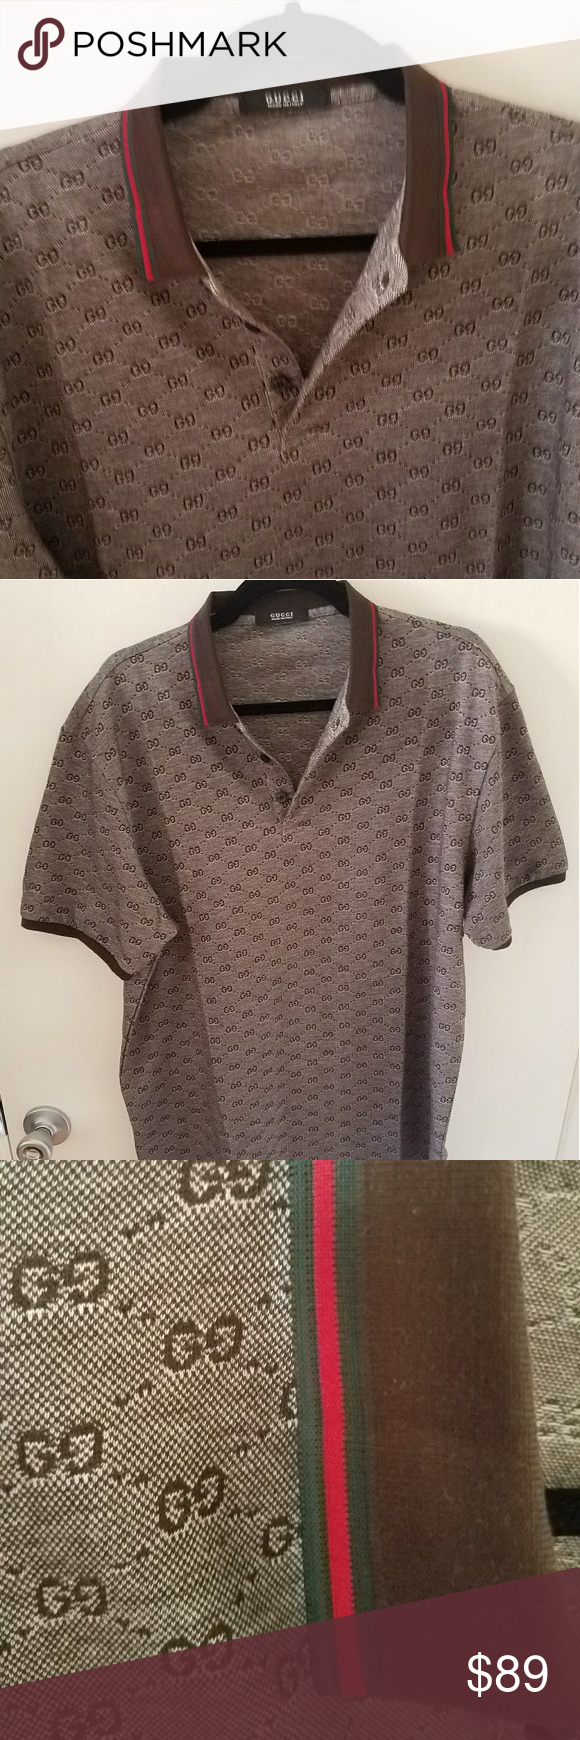 bce06249d1a 100% Authentic Gucci Polo Shirt Brown. L or XL 100% Authentic Gucci Polo  Shirt Brown. No size tag